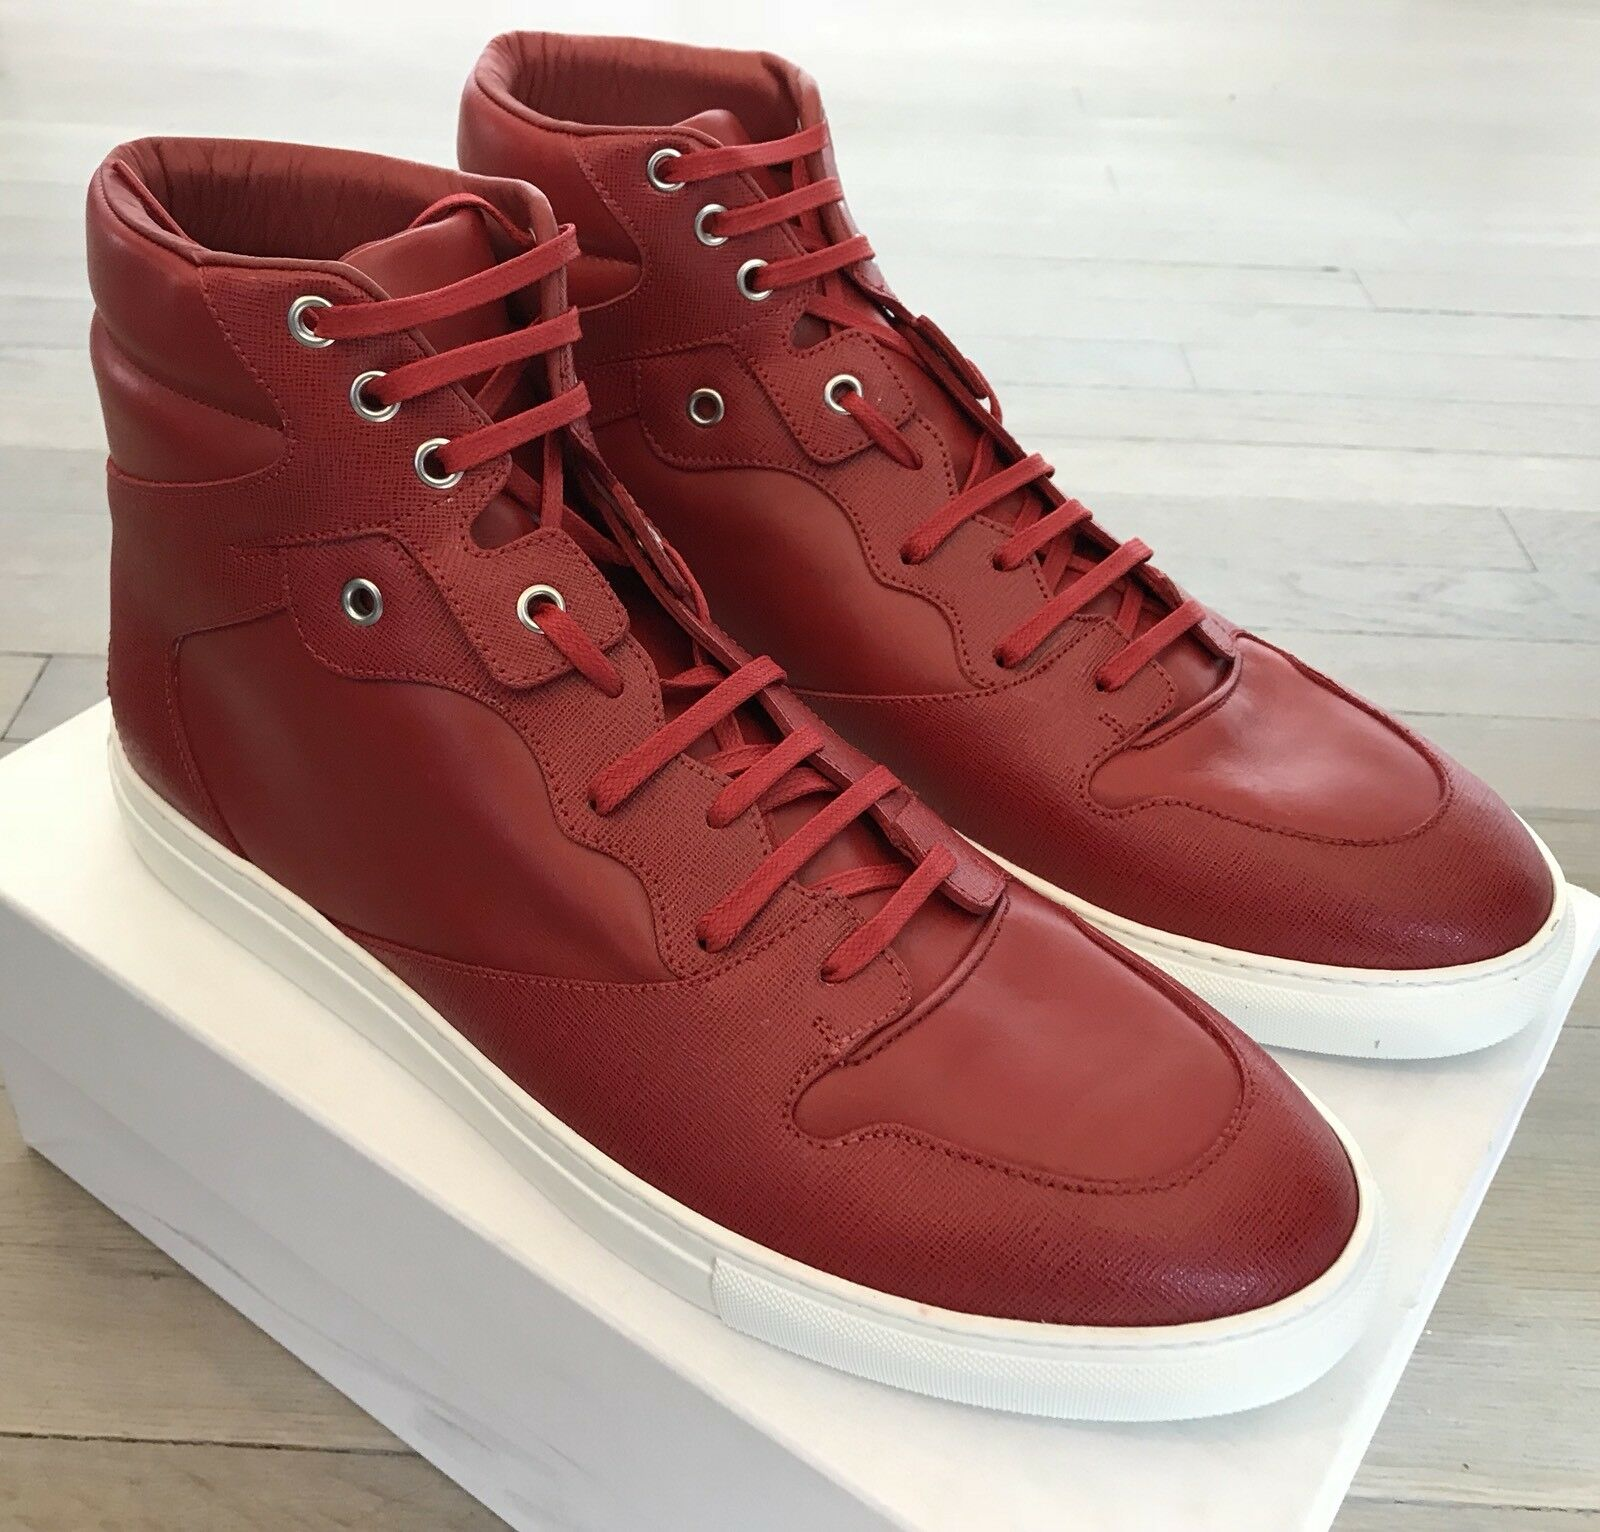 700  Balenciaga Red Leather High Tops Sneakers size US 11,